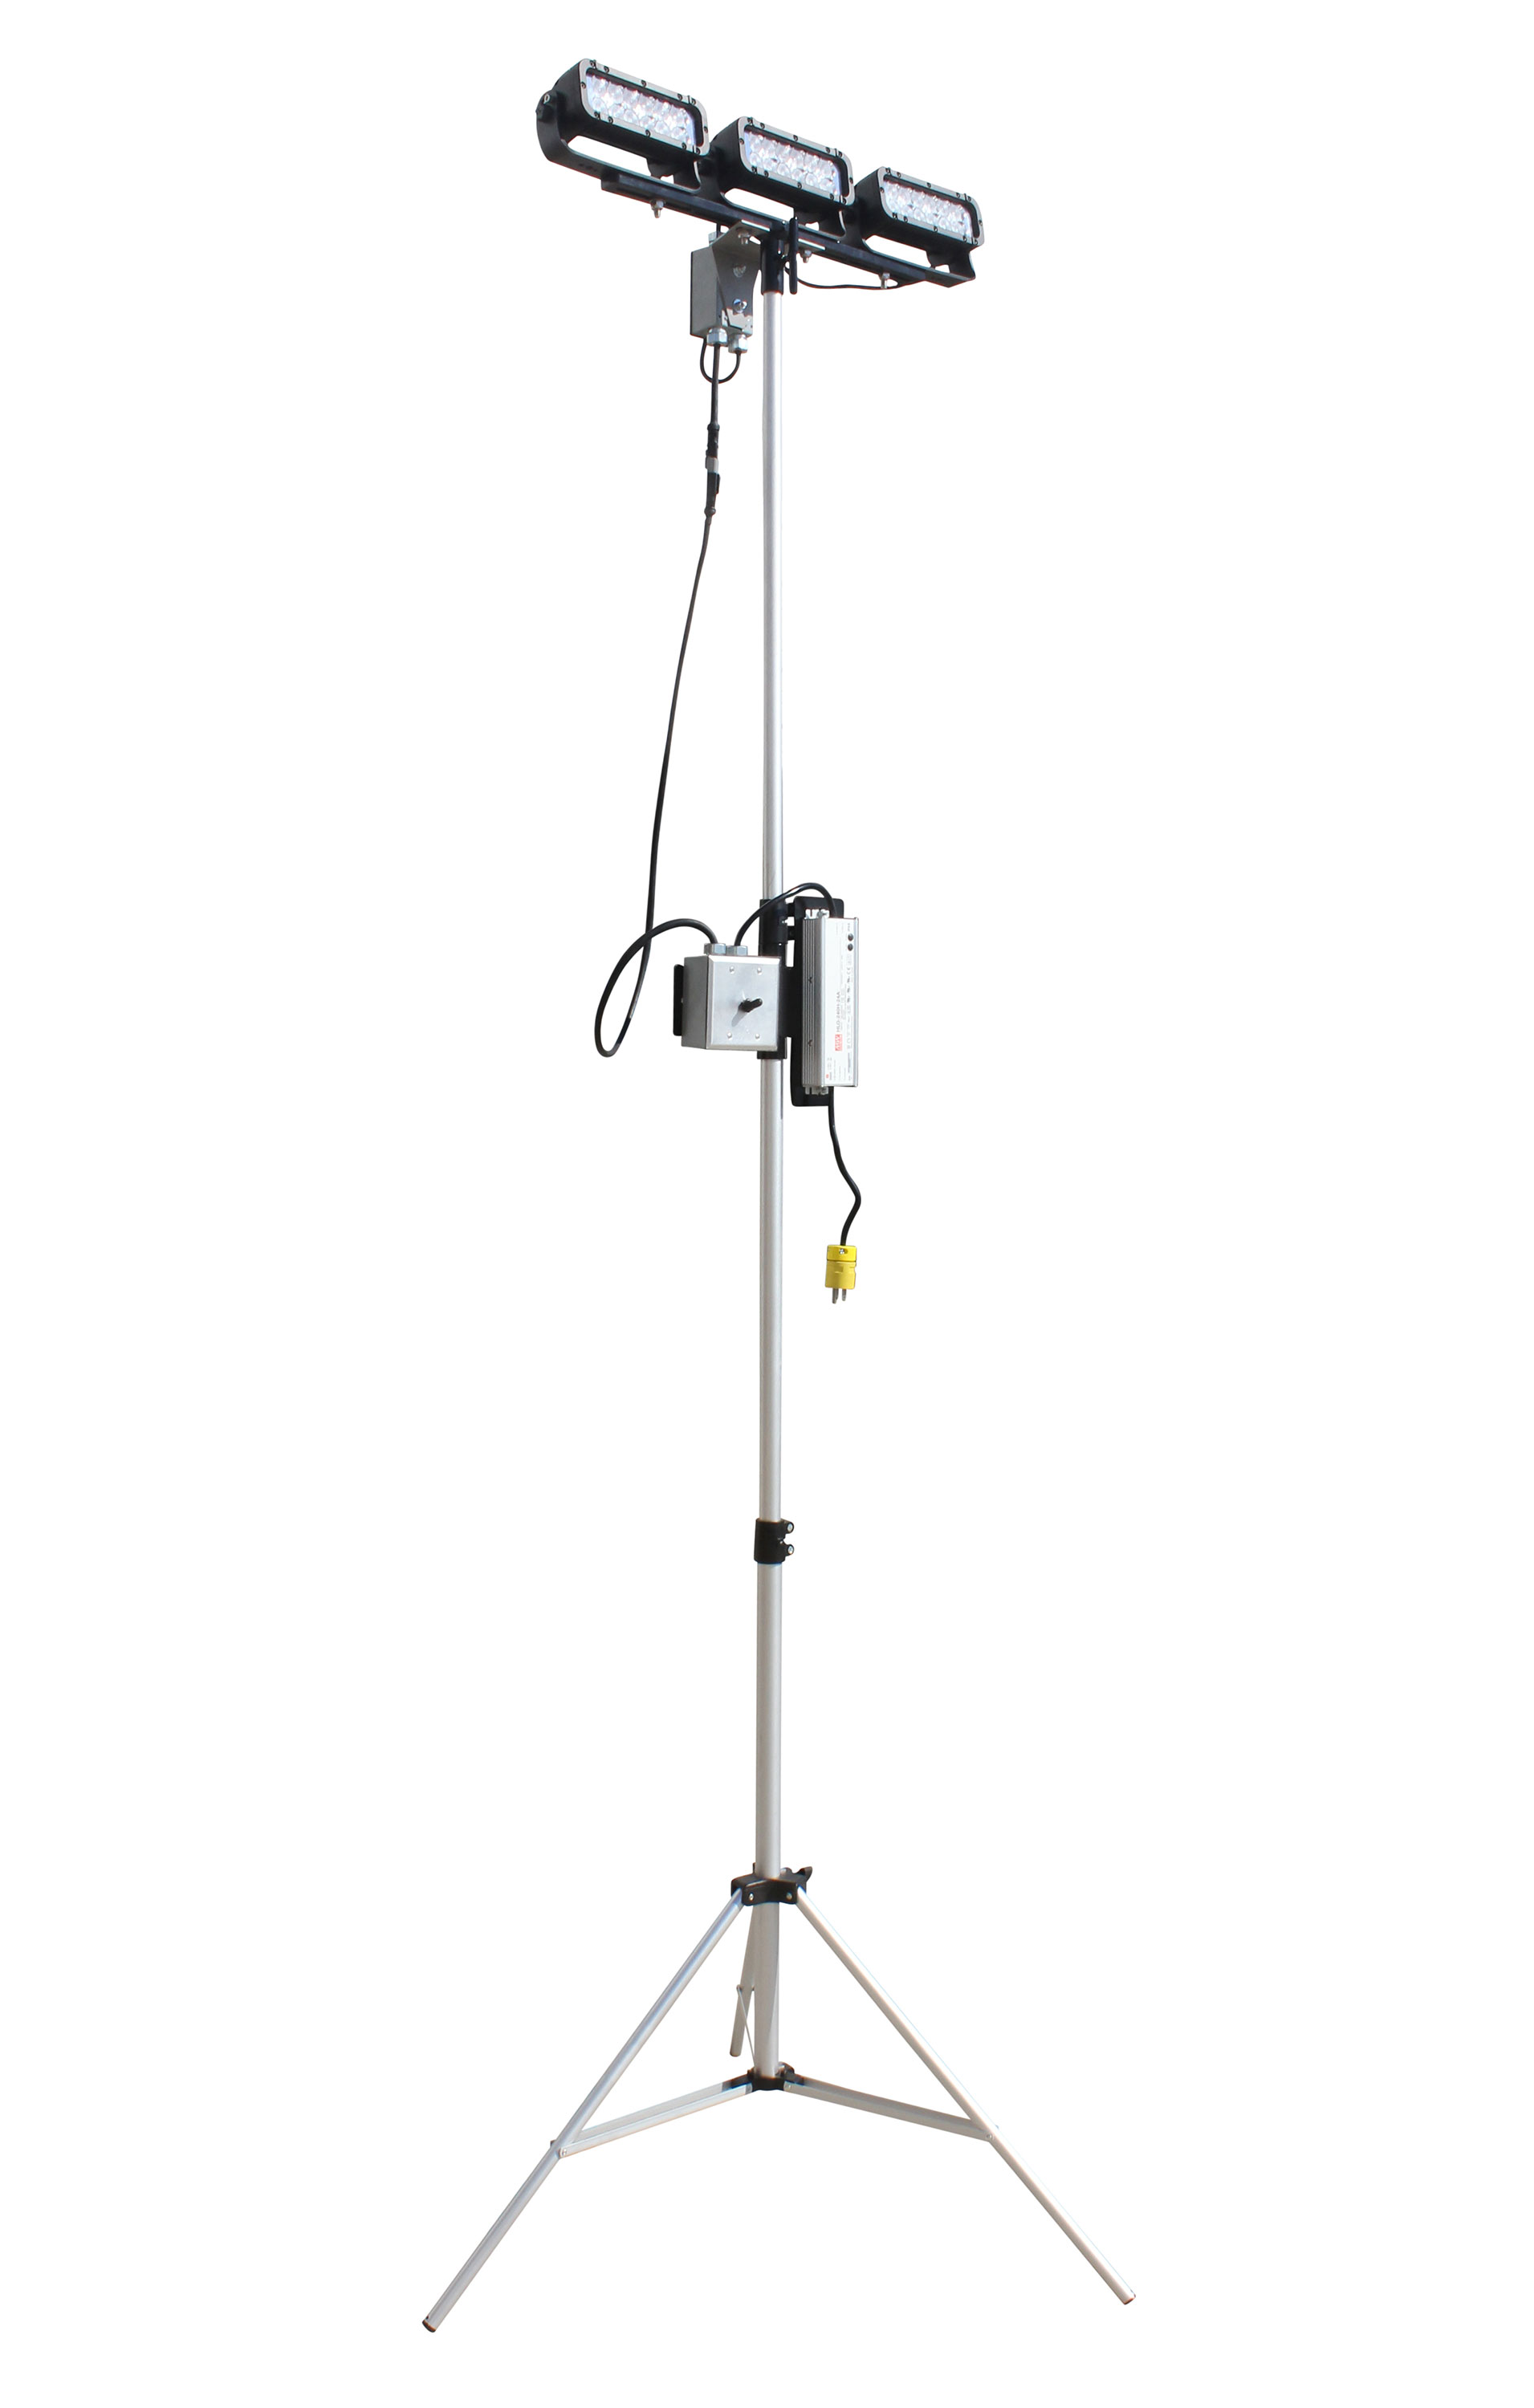 Larson Electronics Releases A 108 Watt Portable Led Telescoping Light Tower